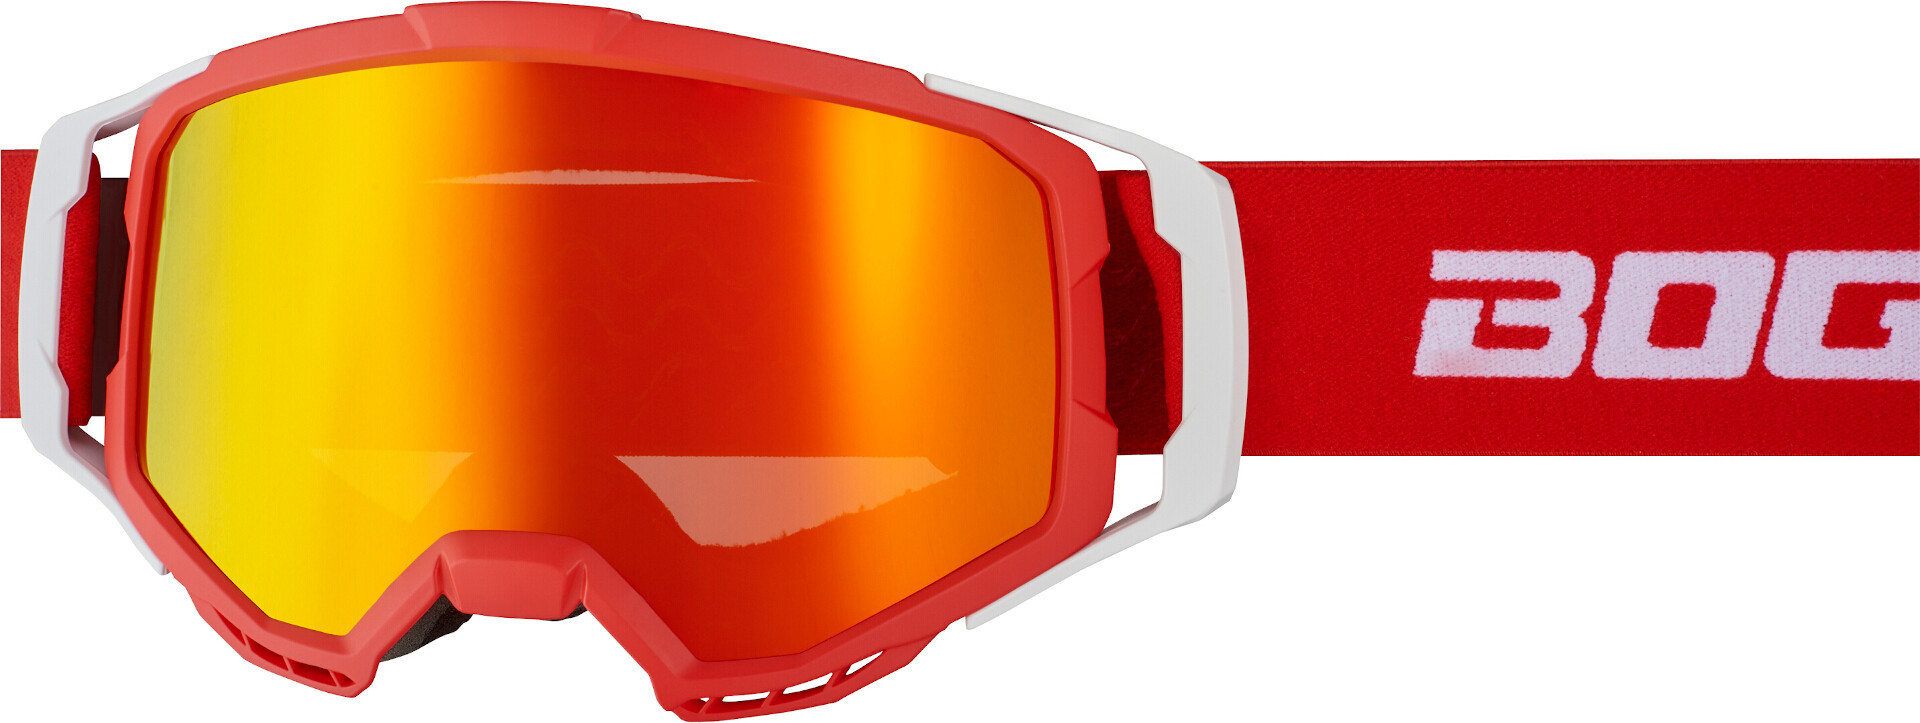 Bogotto B-1 Motocross Brille, weiss-rot, weiss-rot